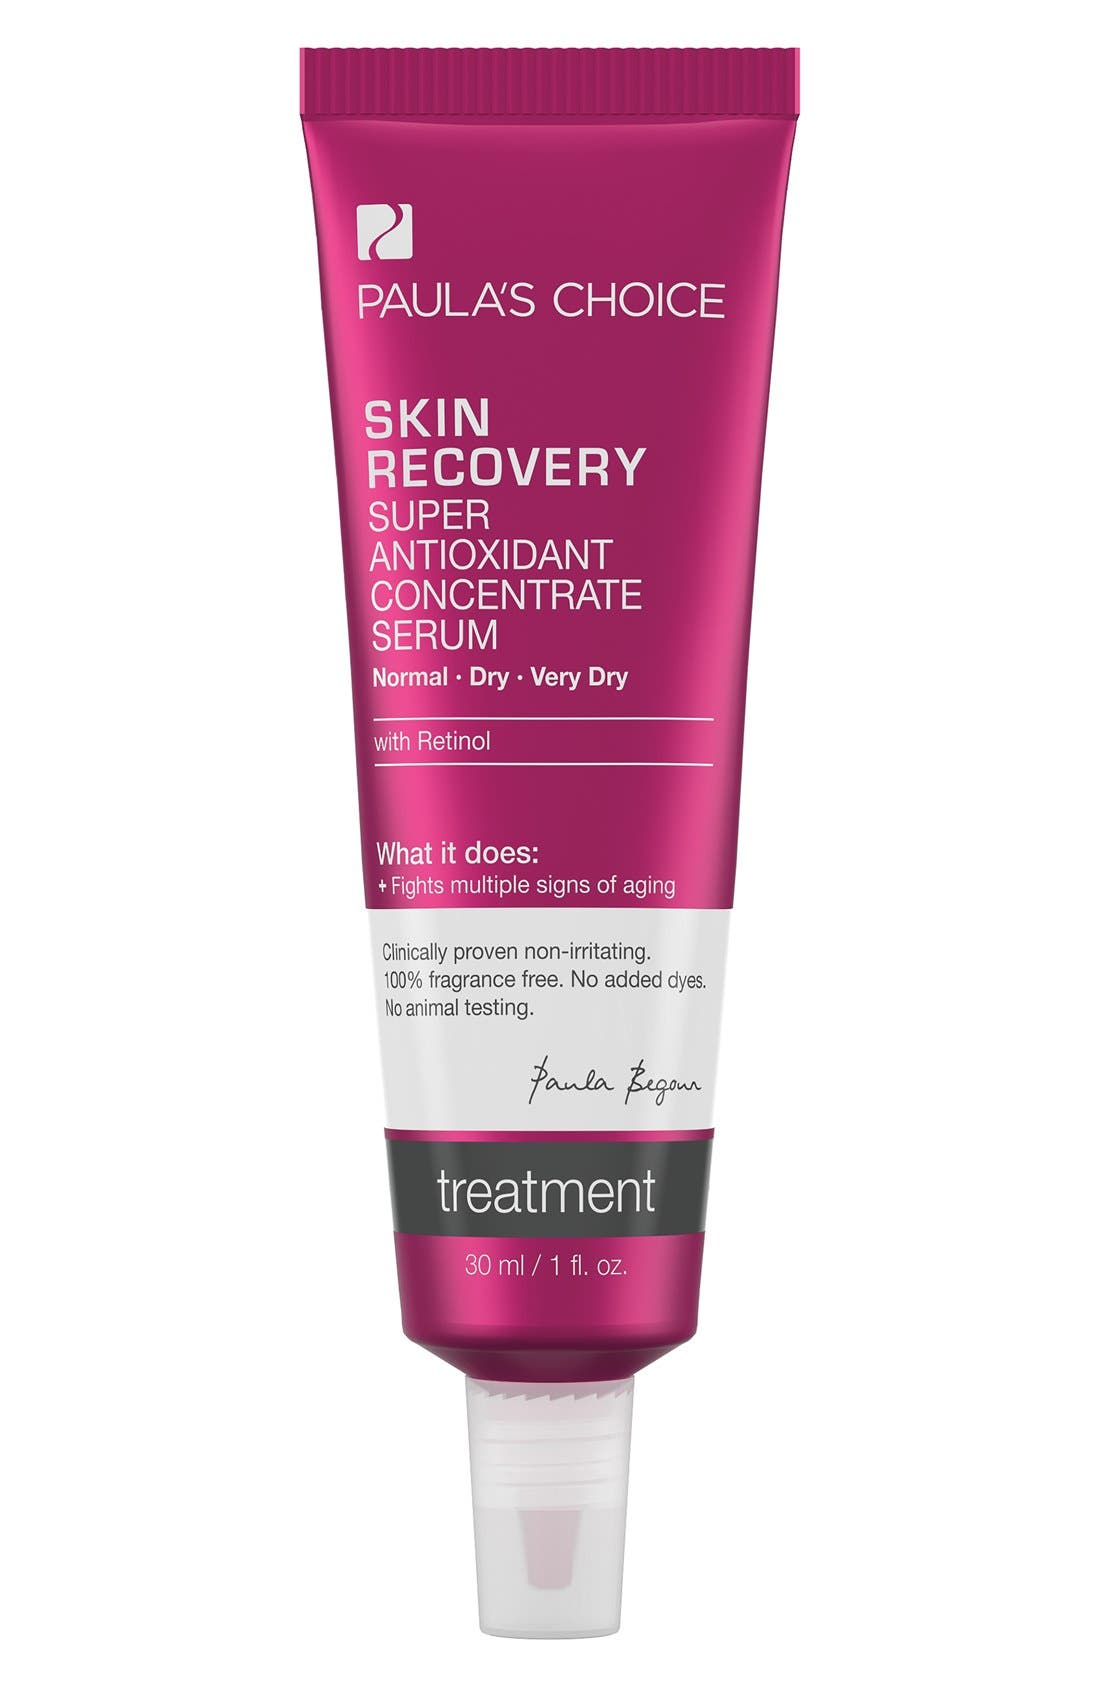 PAULA'S CHOICE Skin Recovery Super Antioxidant Concentrate Serum with Retinol, Main, color, 000